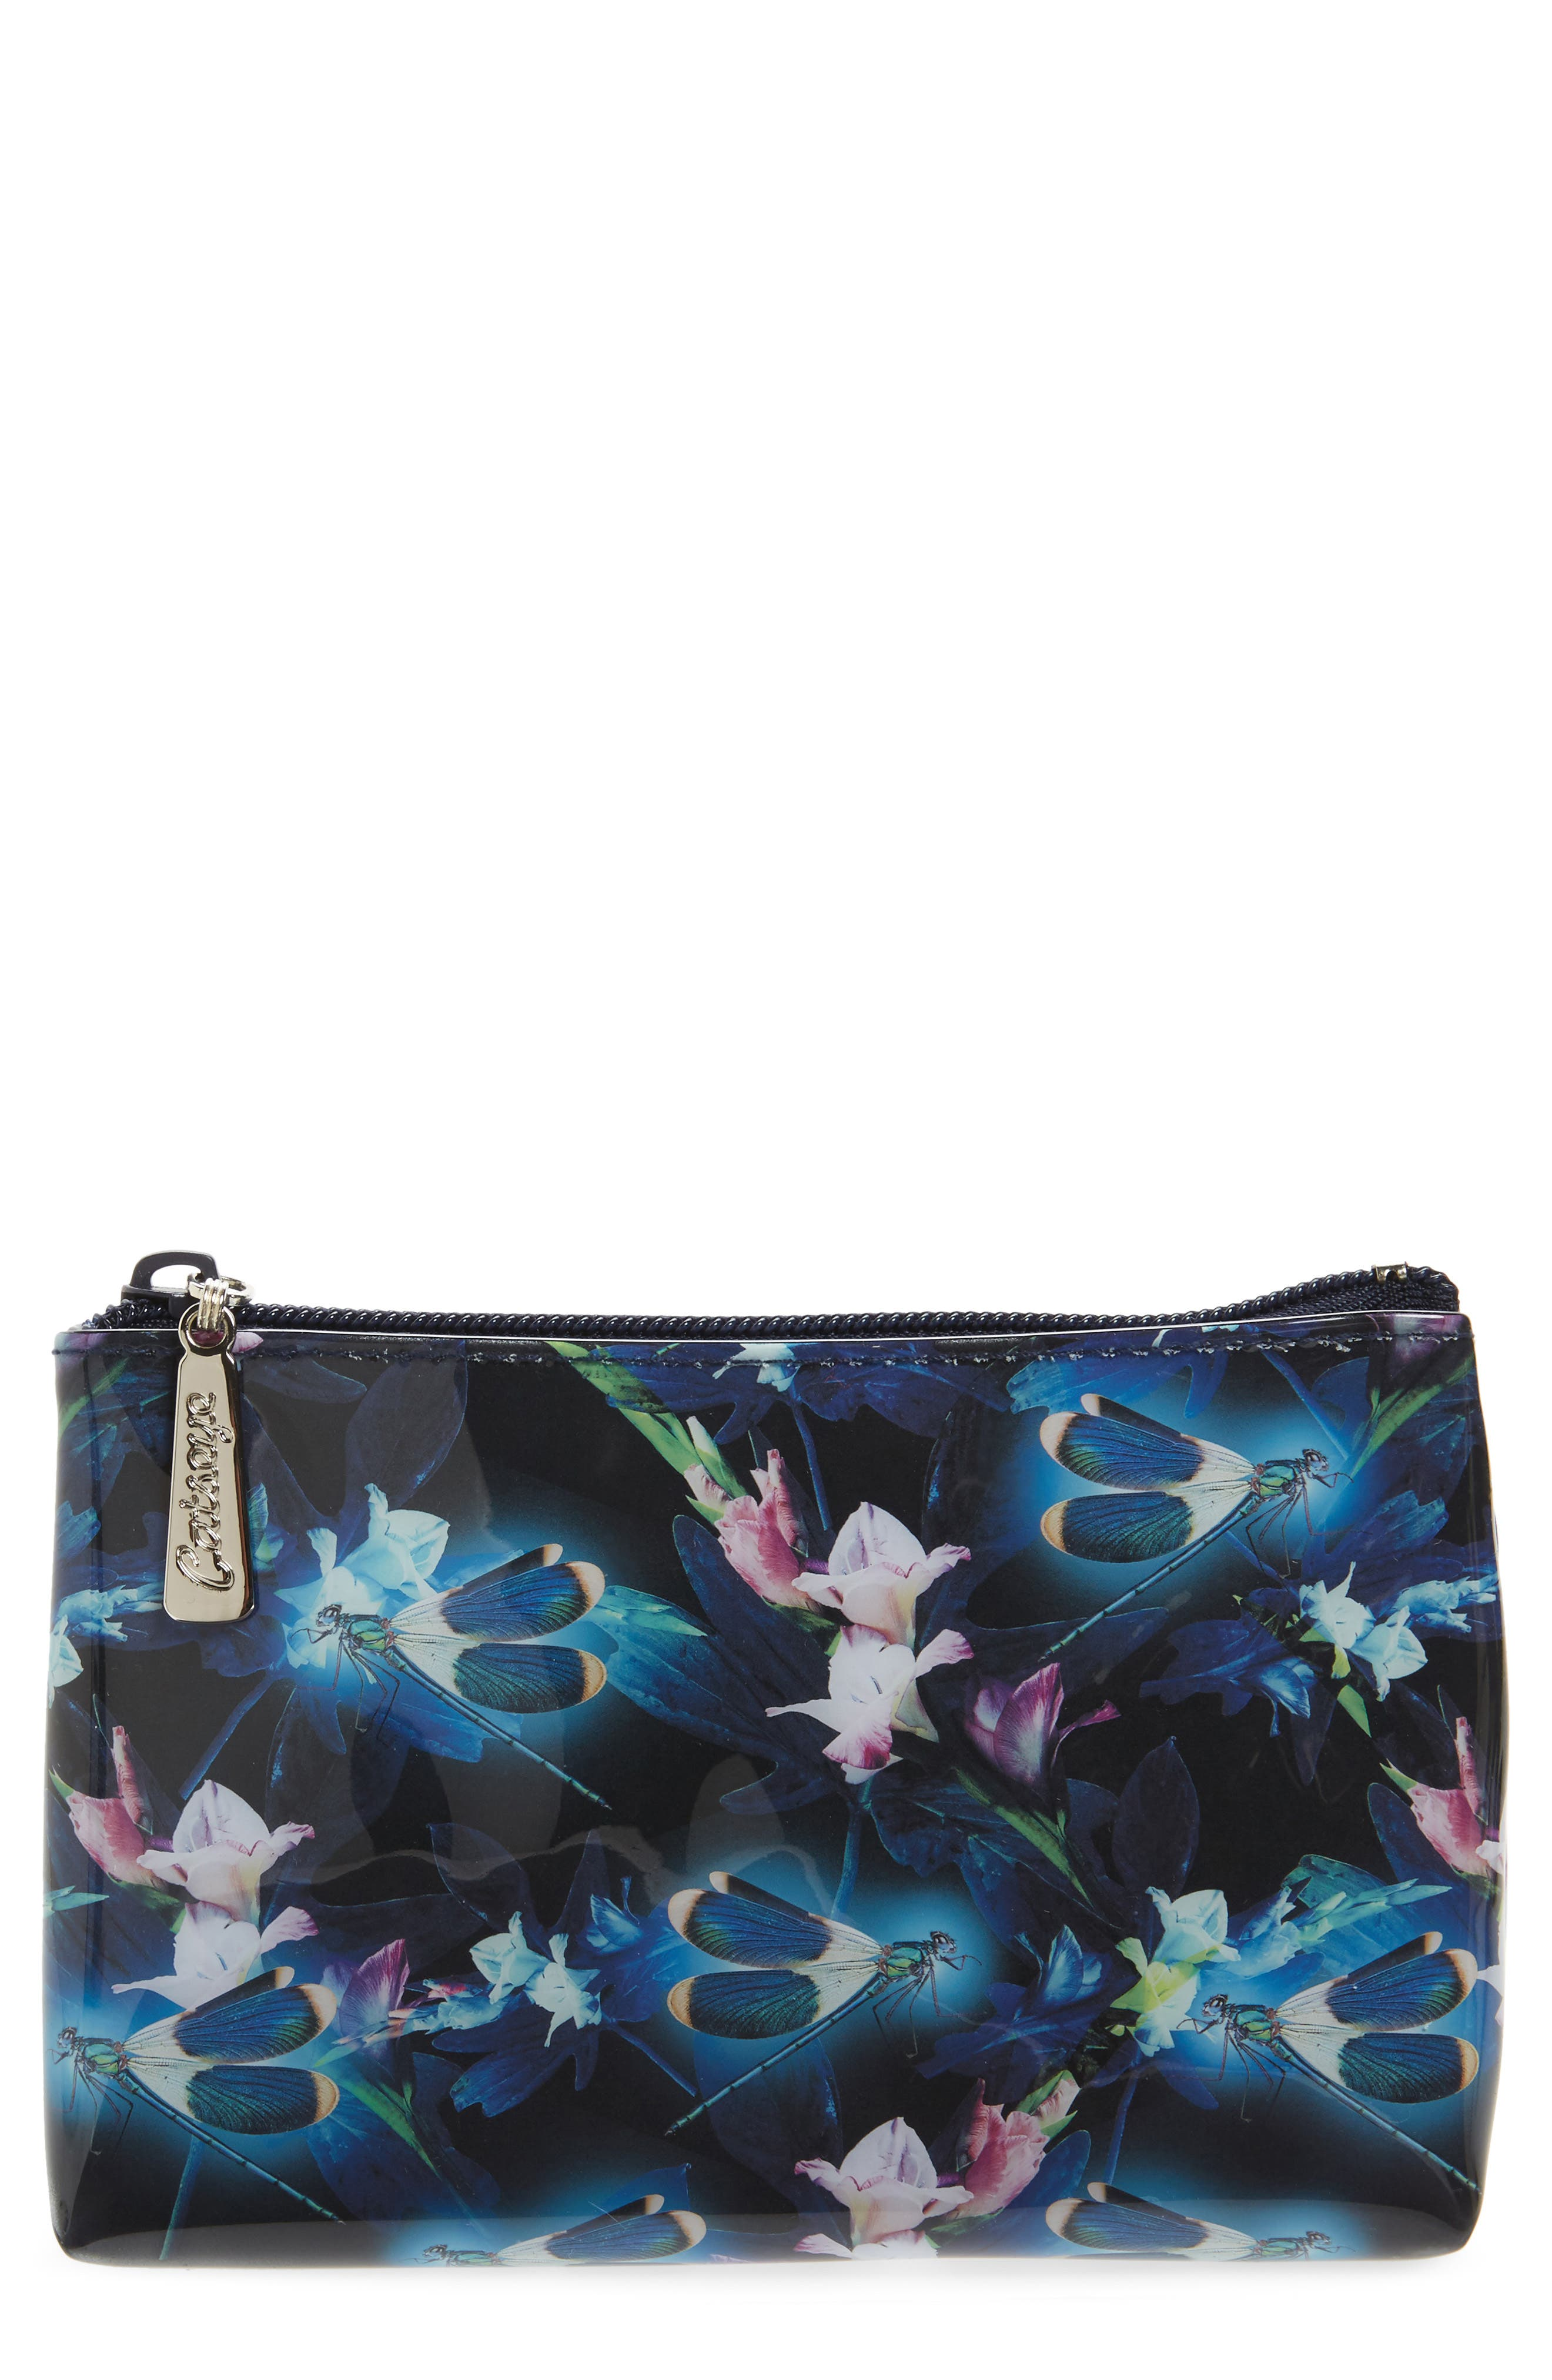 Night Blooms Cosmetics Pouch,                             Main thumbnail 1, color,                             Black